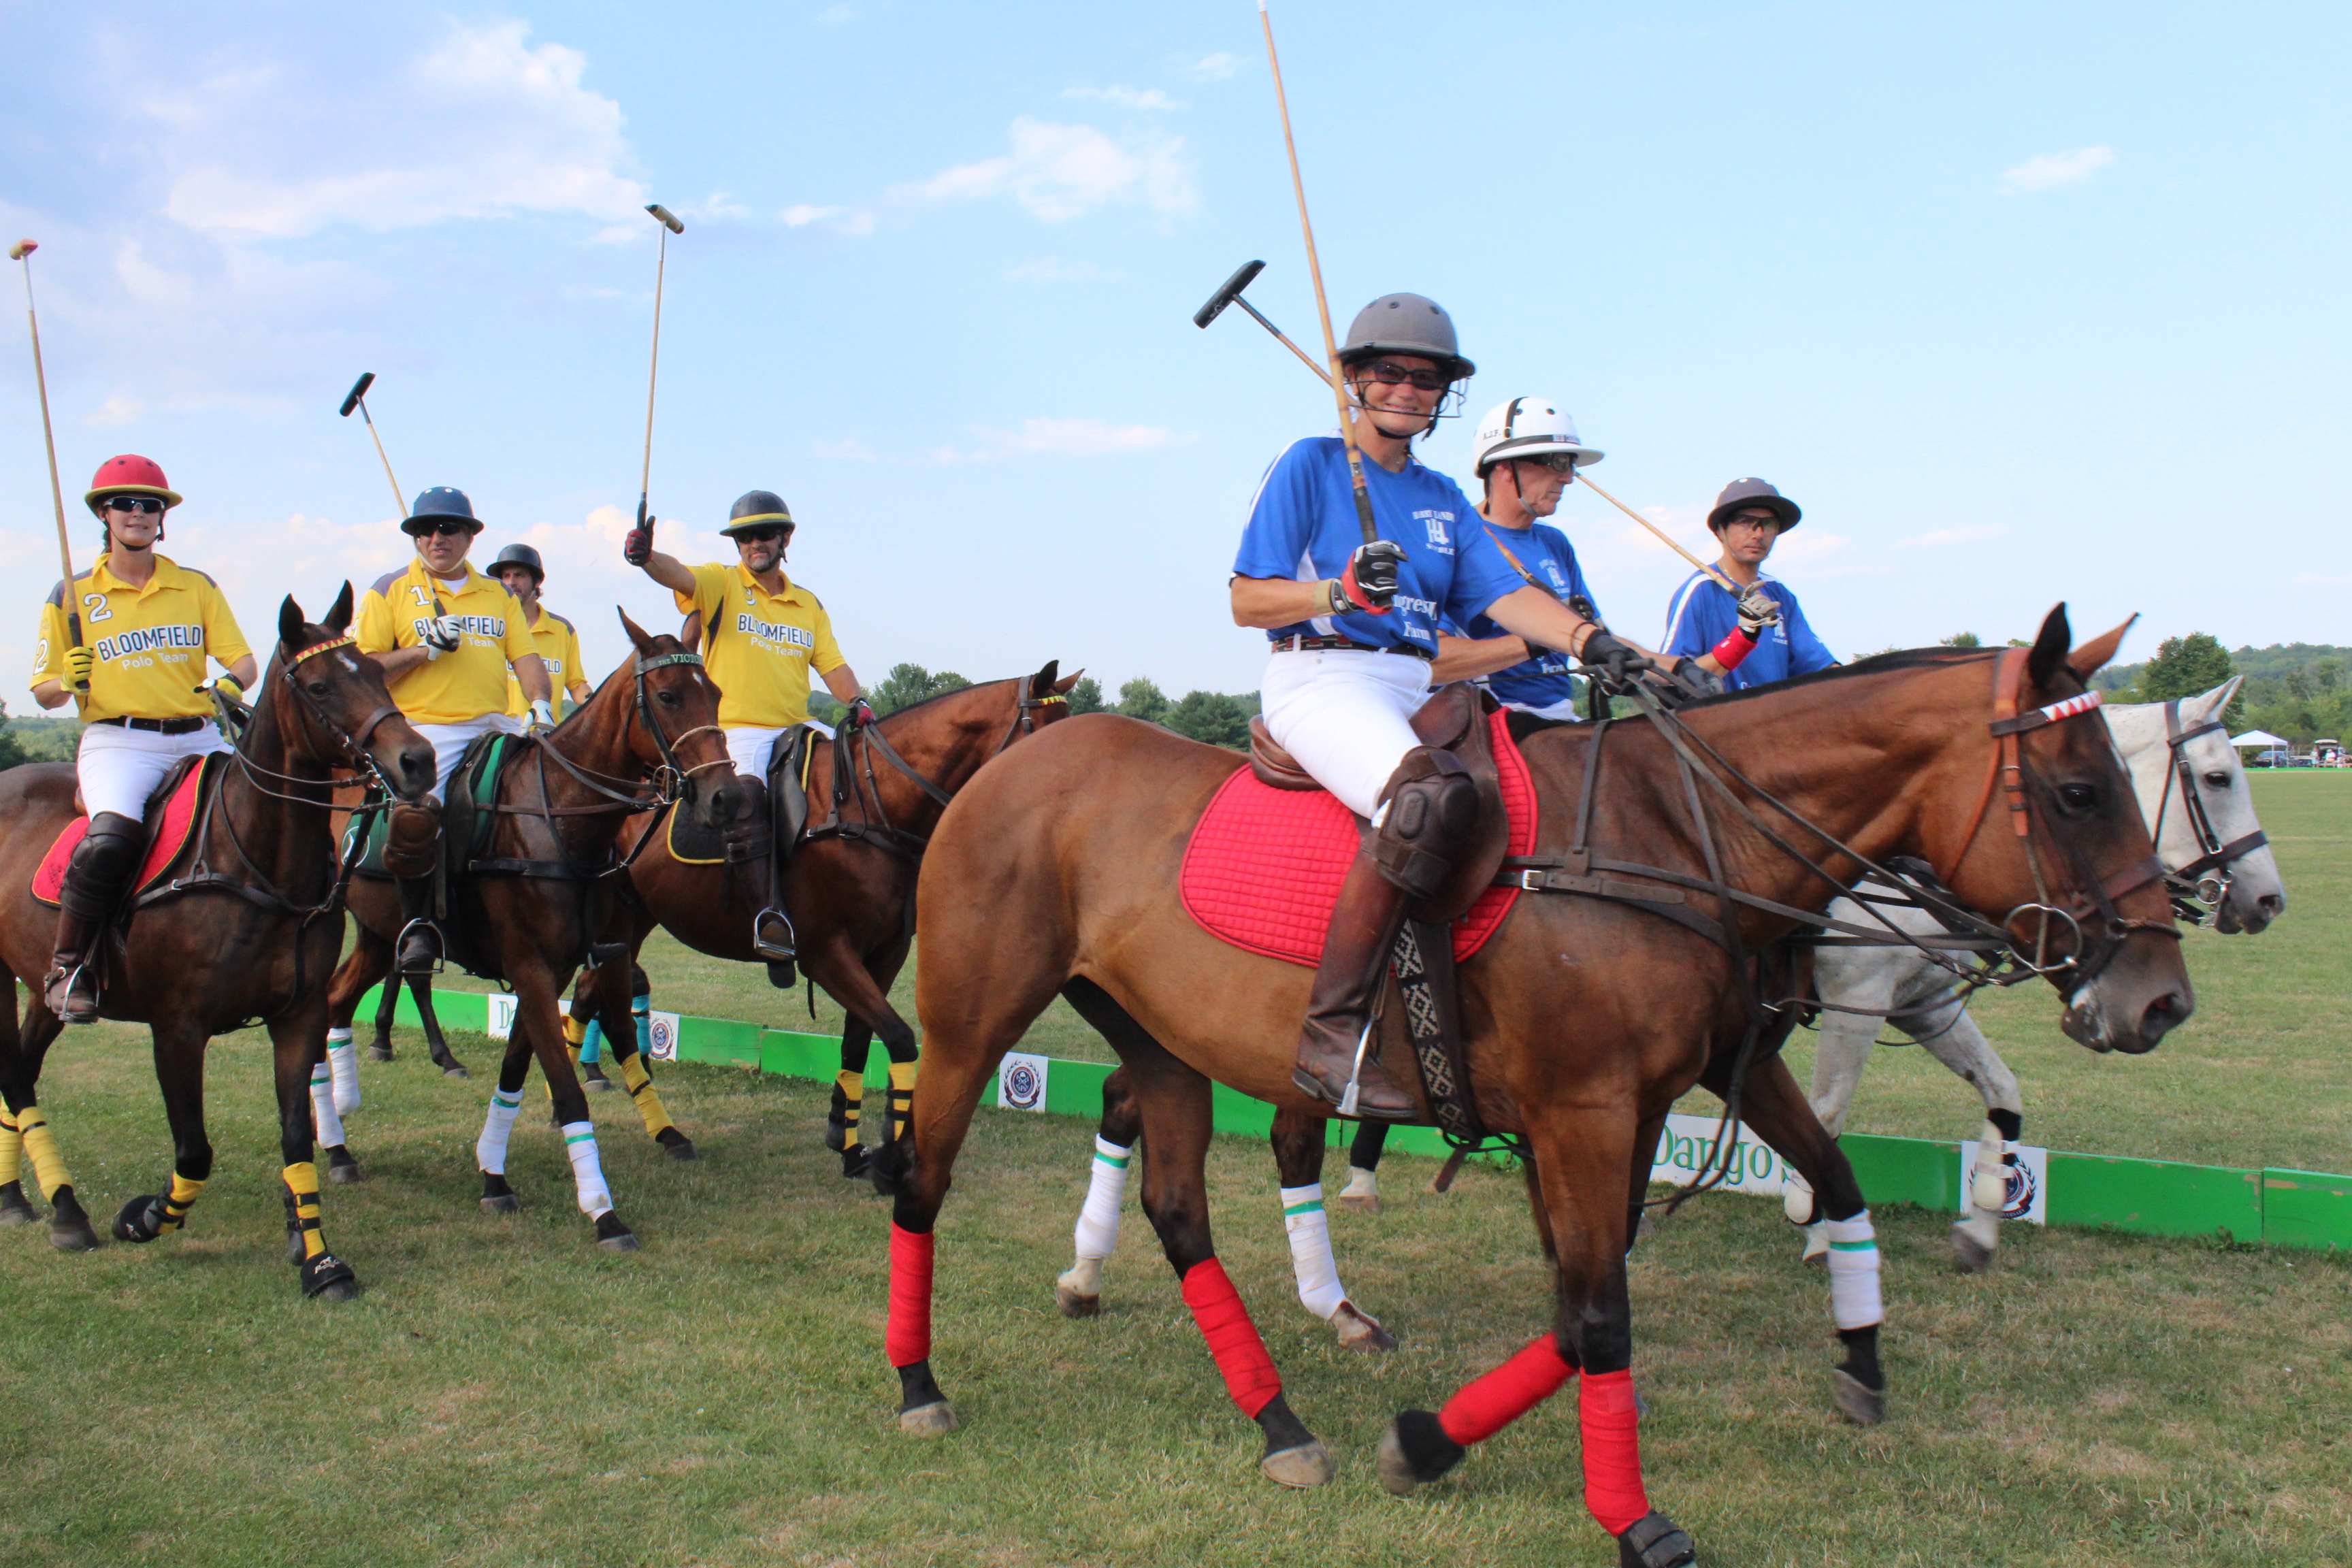 Polo players on horses at the Saratoga Dogs Pony Show to benefit AIM Services, Inc.